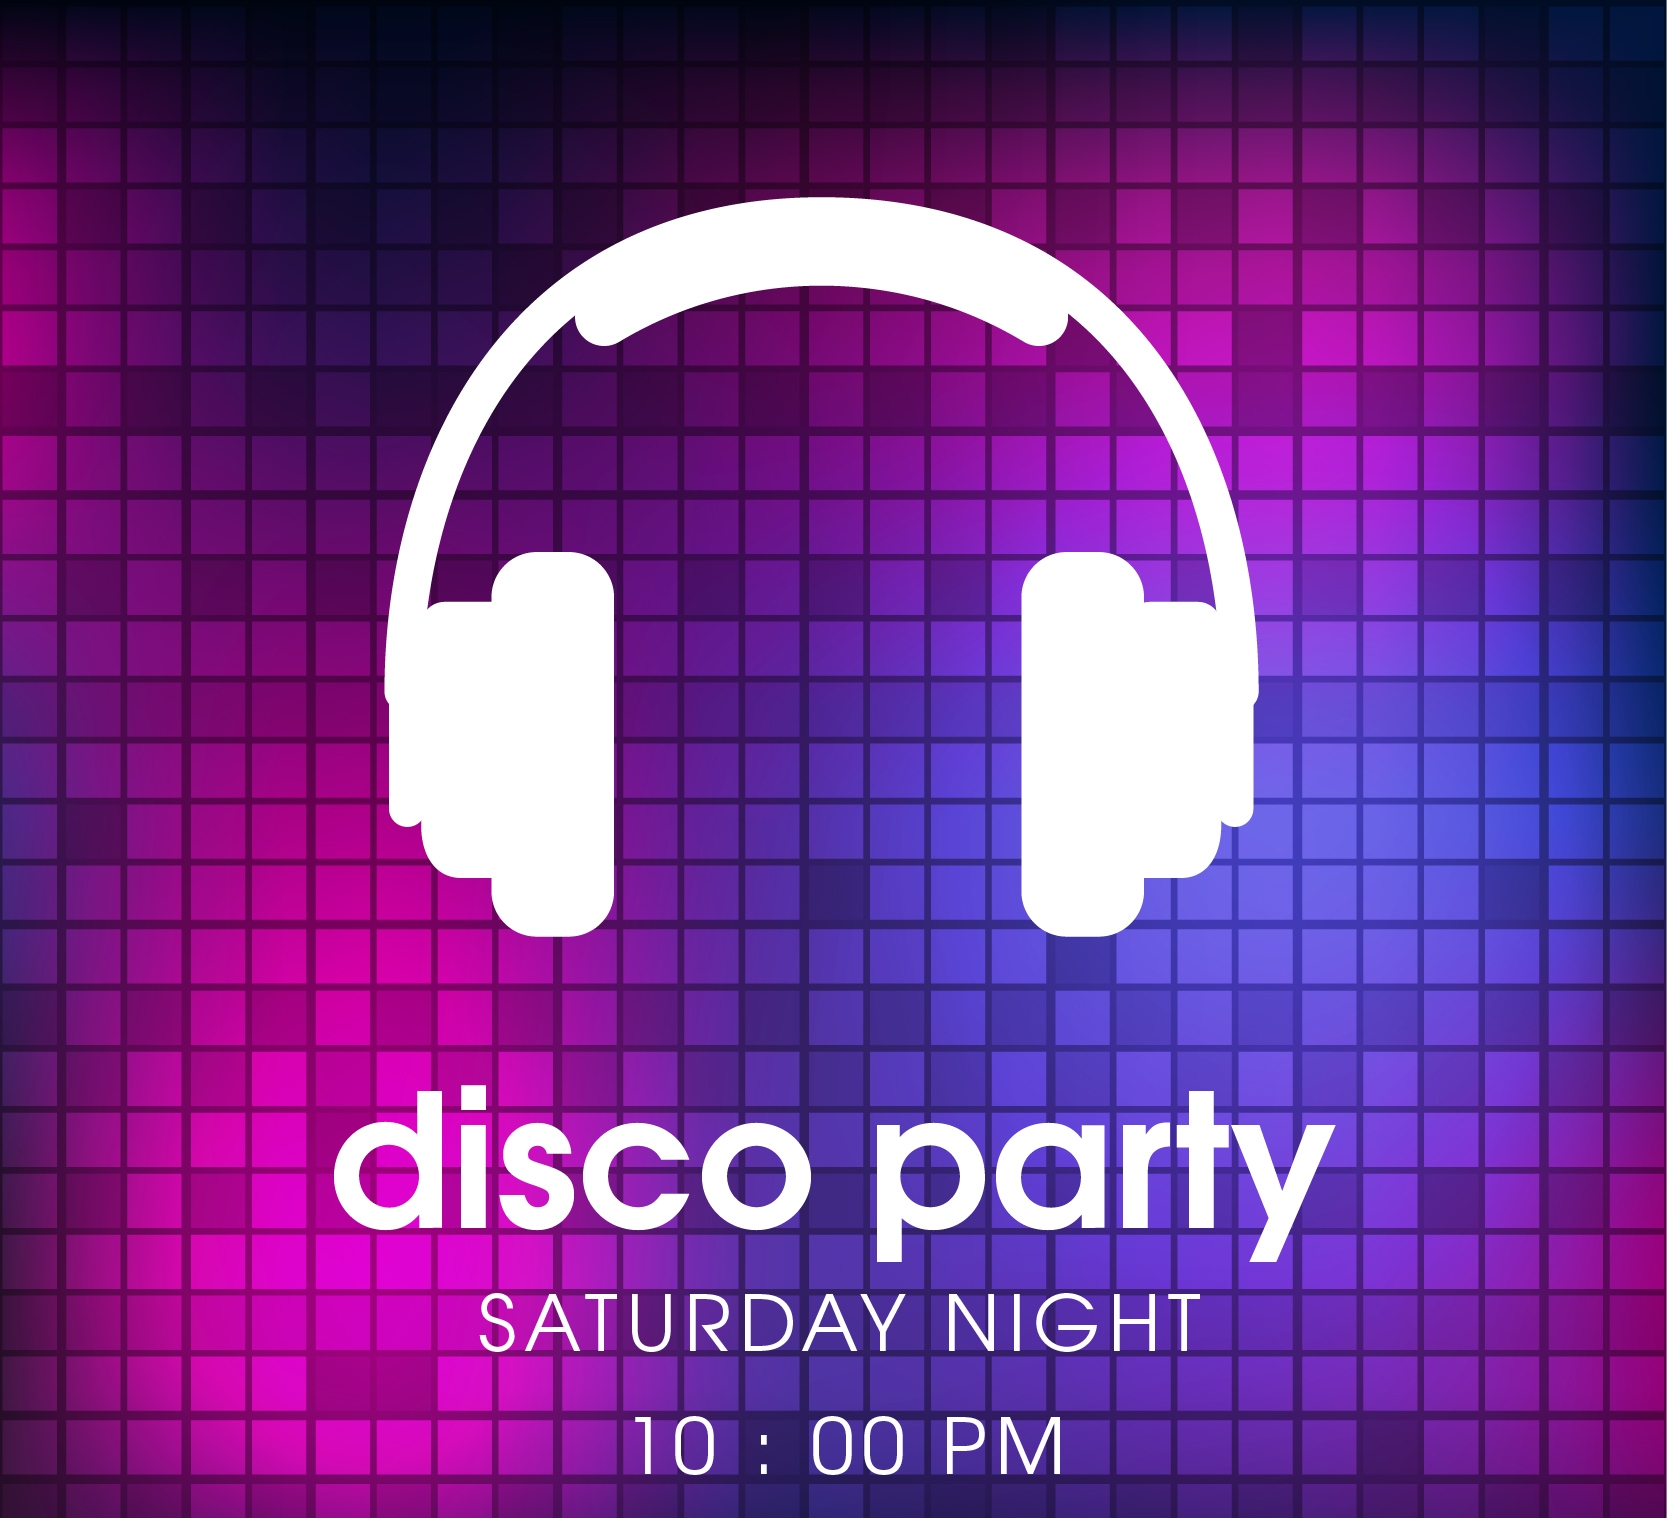 disco party poster with headphones